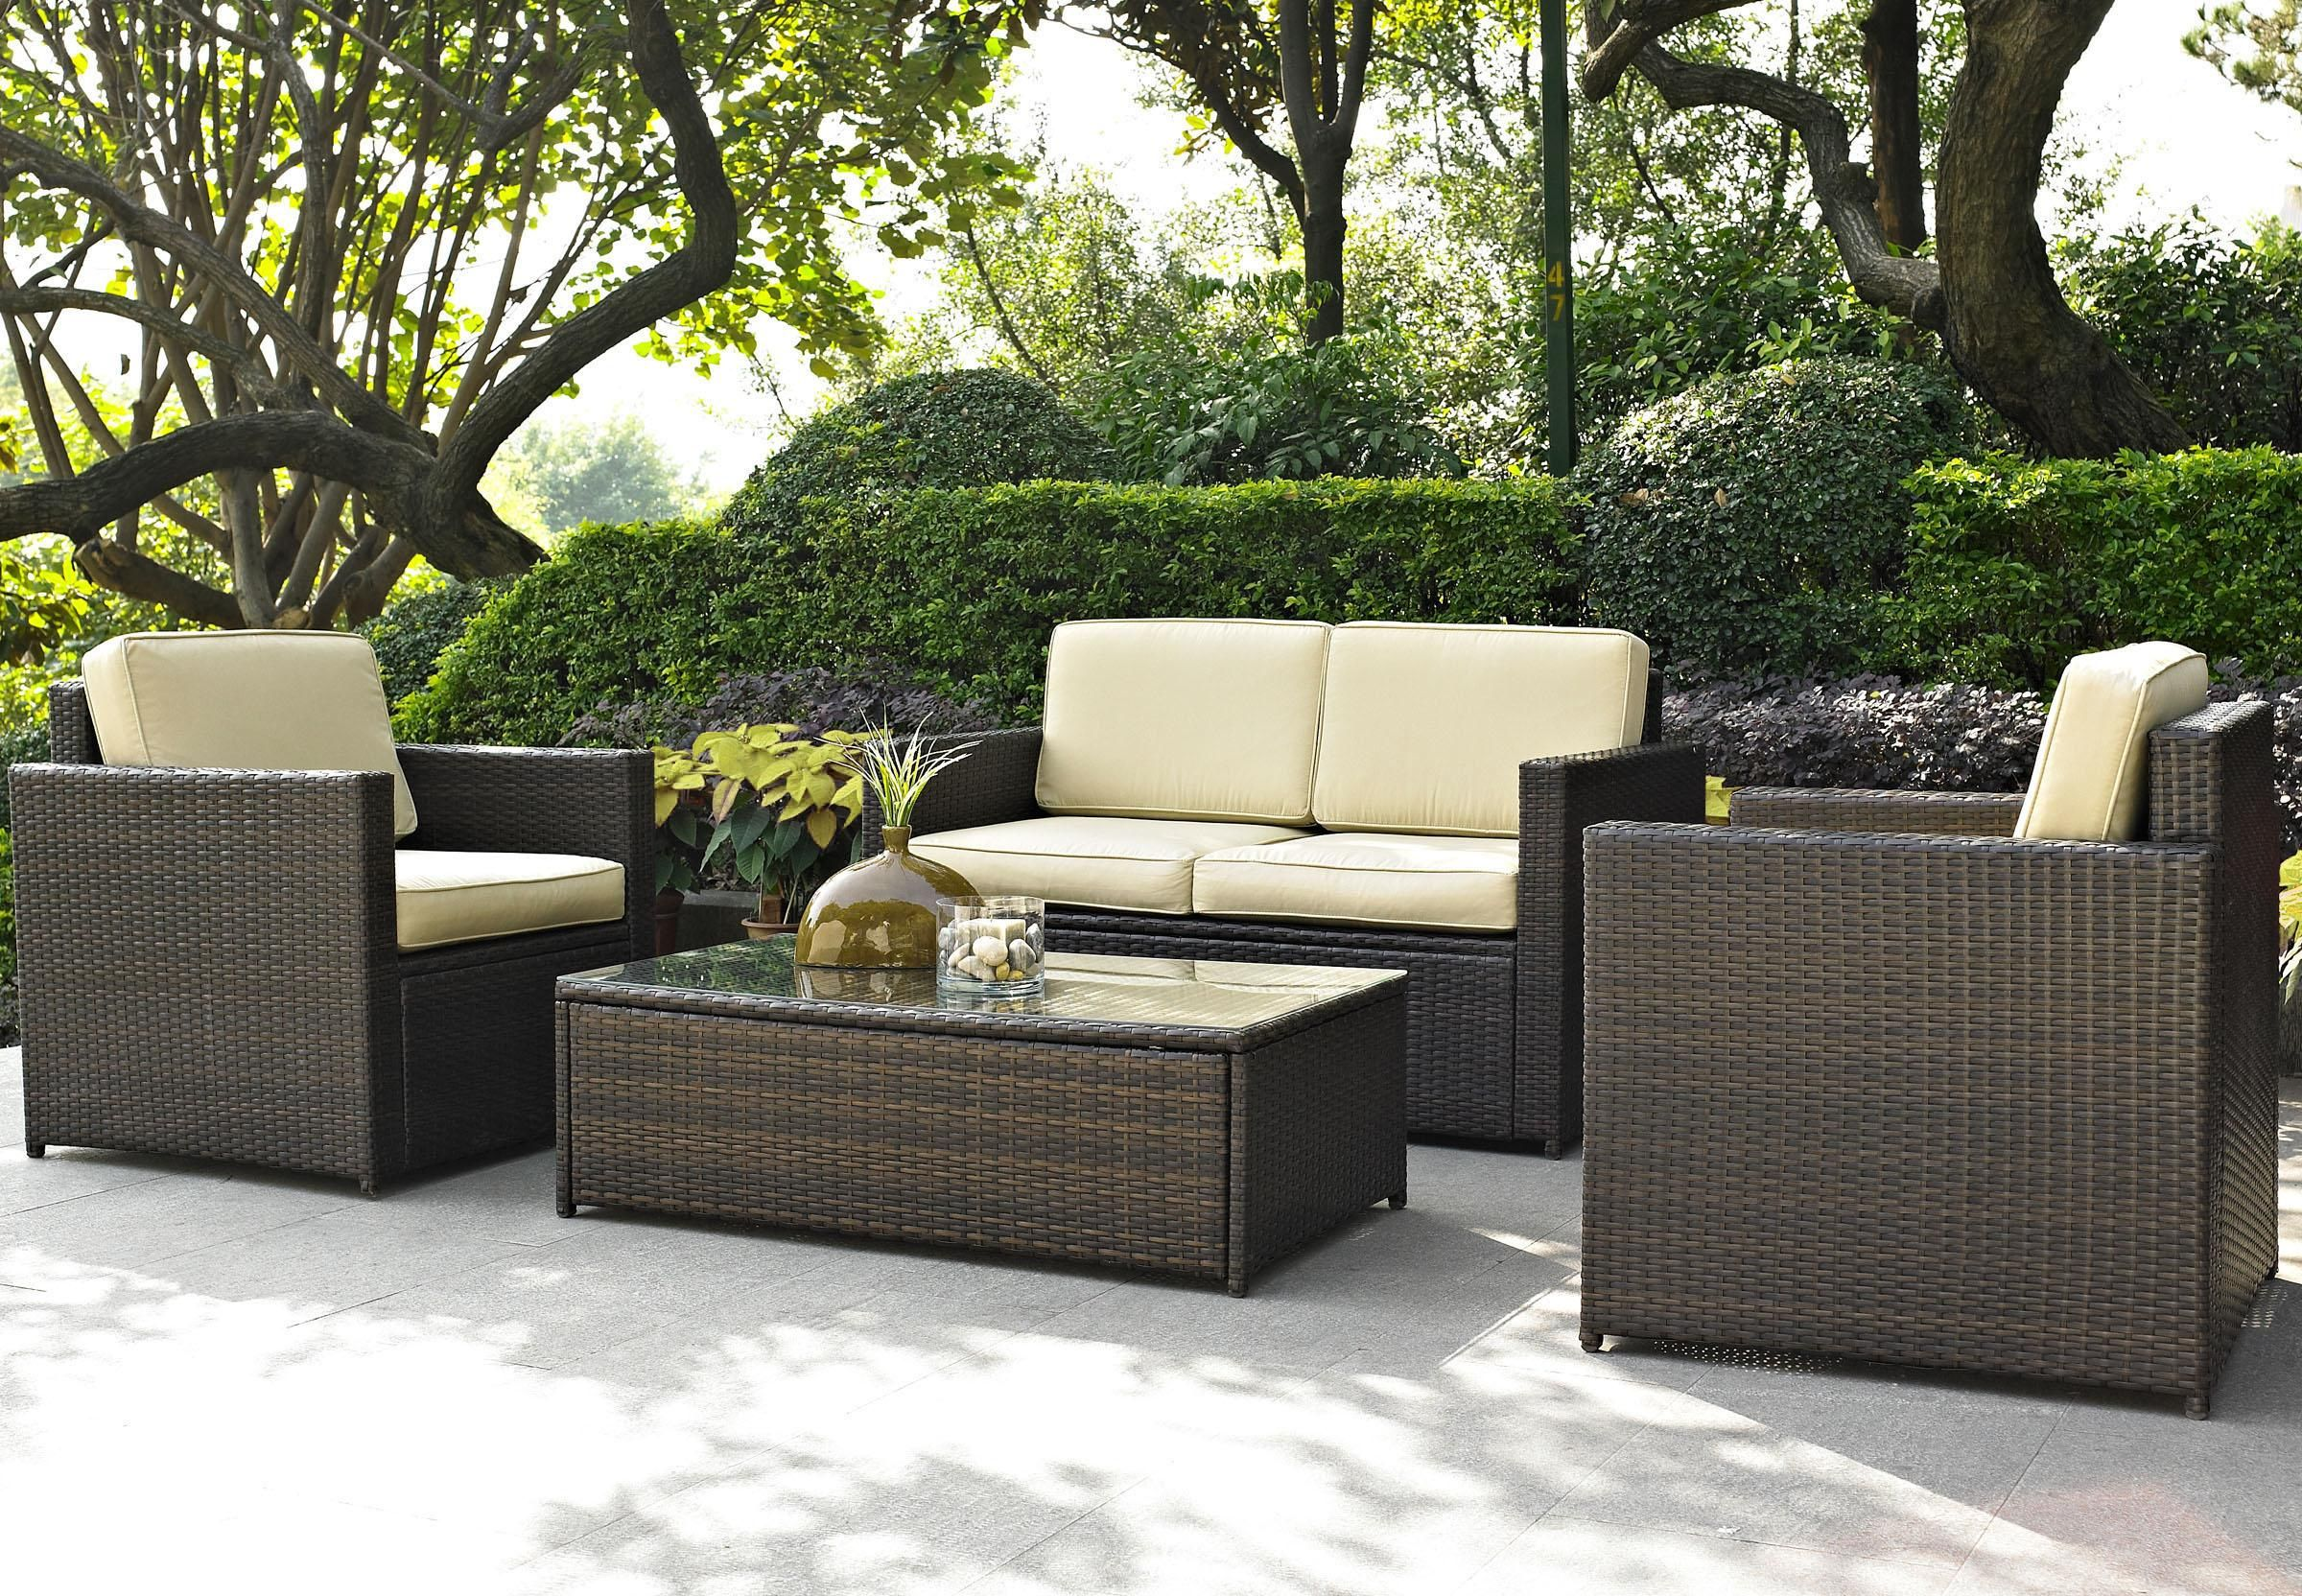 Merveilleux Used Furniture Delray Beach   Modern Luxury Furniture Check More At  Http://searchfororangecountyhomes